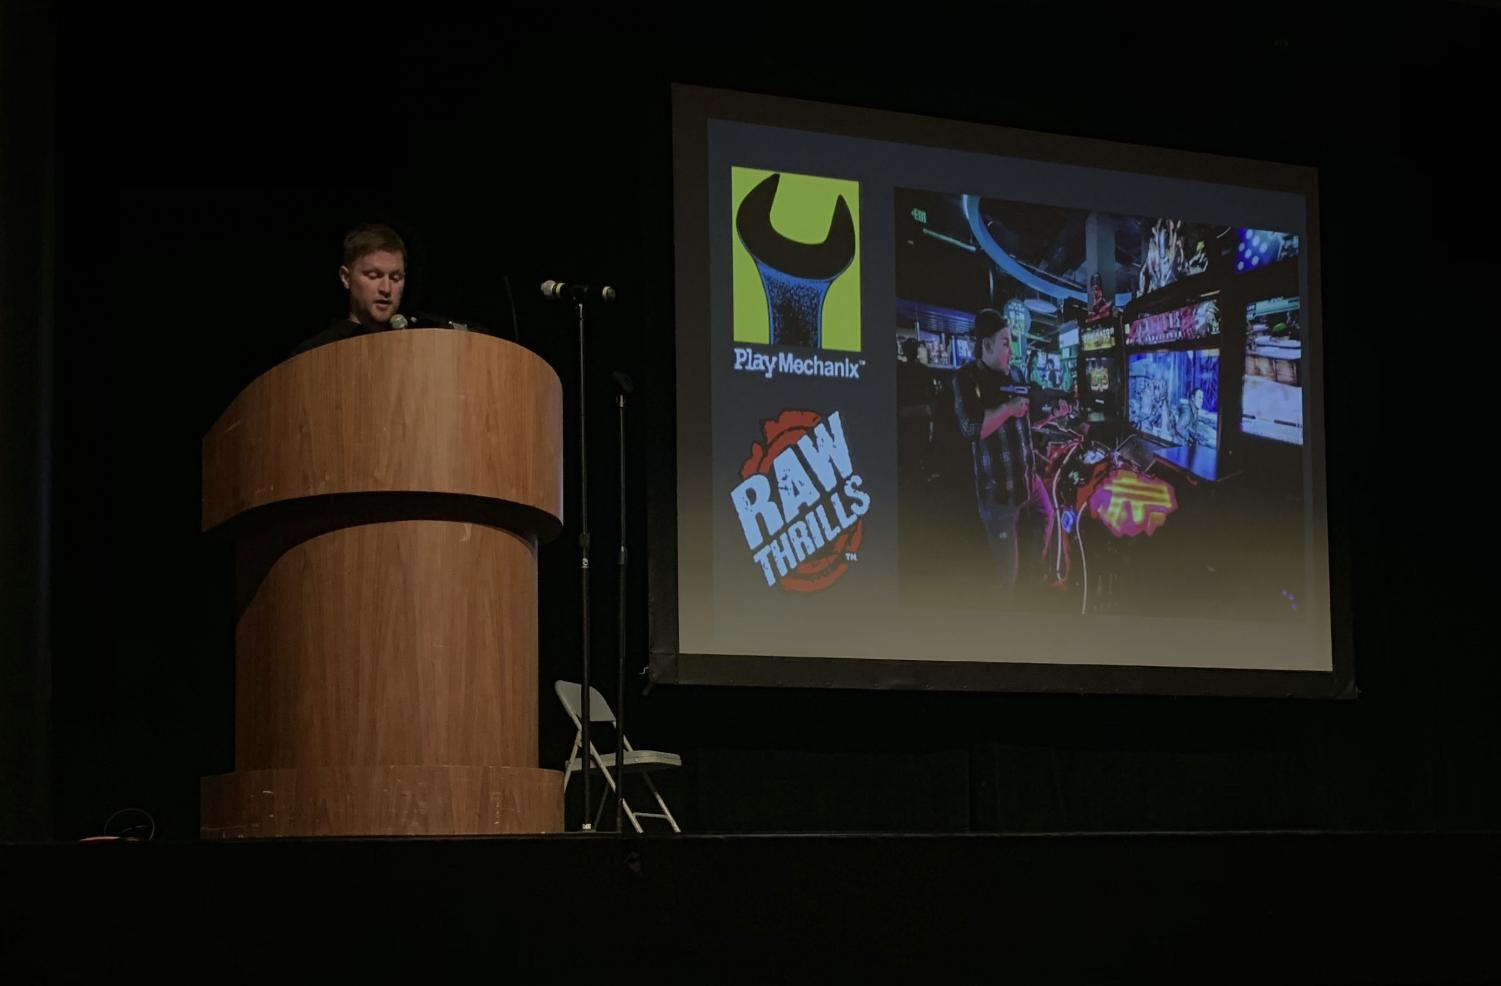 Nate Davis highlights the company PlayMechanix and the many games that he has helped produce with them.